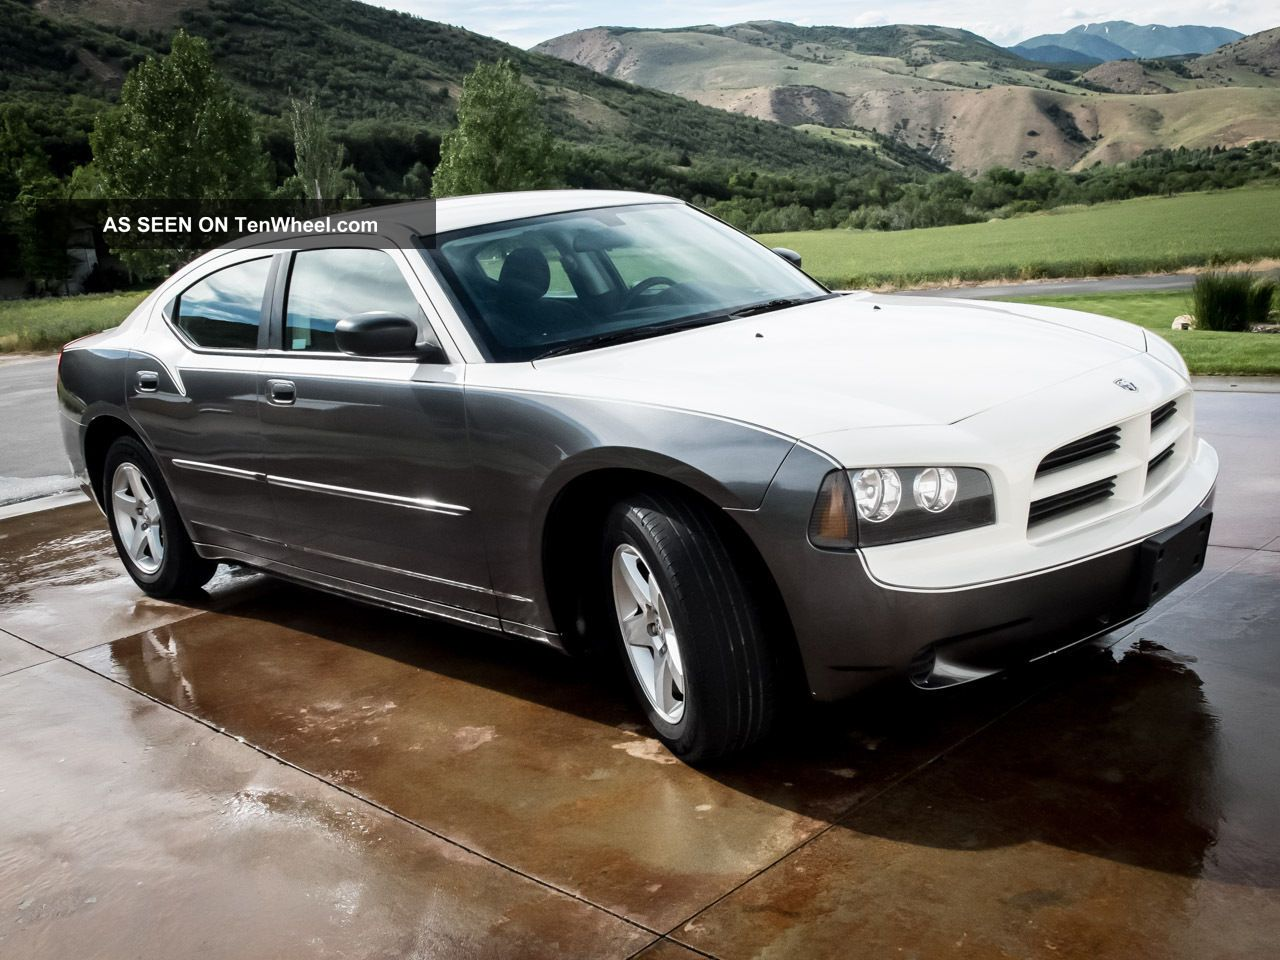 2009 dodge charger 3 5l high output v6 custom paint spotless. Black Bedroom Furniture Sets. Home Design Ideas